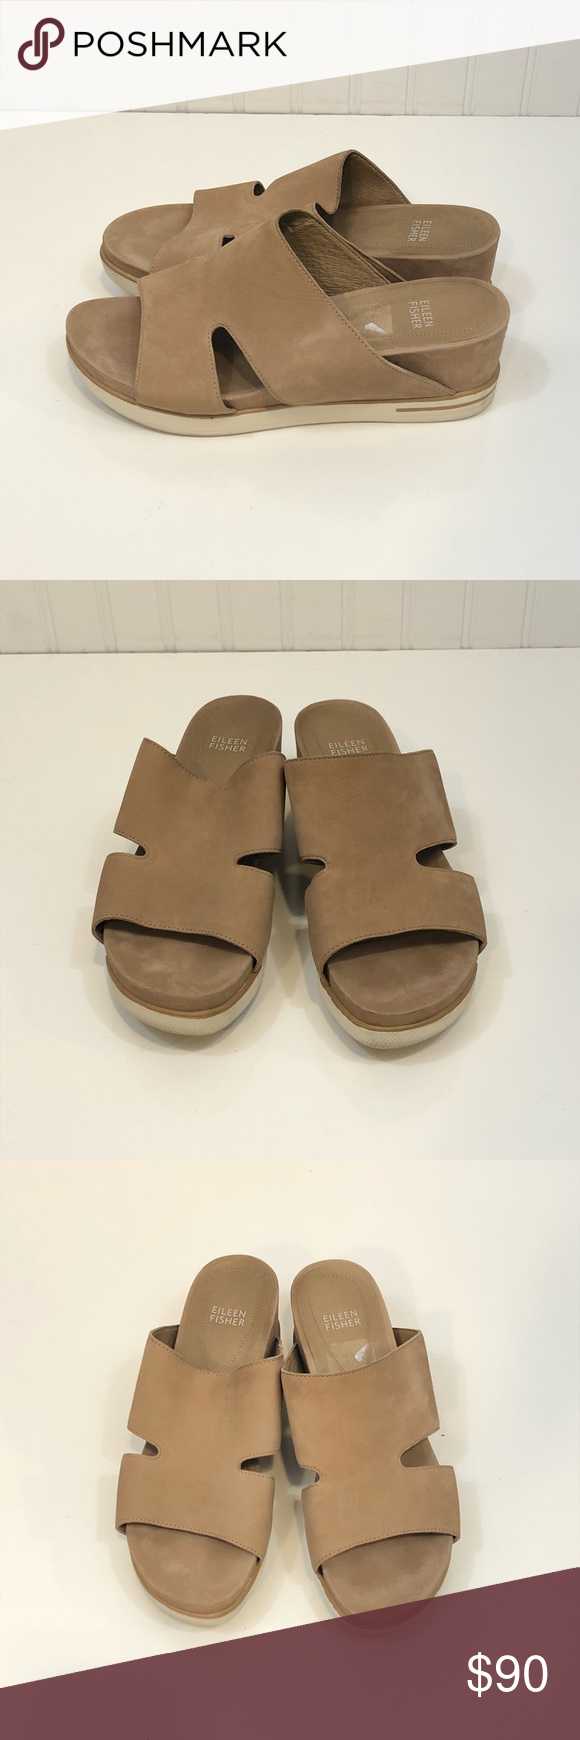 "Eileen Fisher Tan & White Sandals Wedge sandal  Size 9  MOST AMAZING QUALITY! Like new condition worn once Small wedge is 2.5"" tall  These shoes pair with everything!!  Vacation wear Beach  Honeymoon Cruise  Party Eileen Fisher Shoes Sandals #beachhoneymoonclothes"